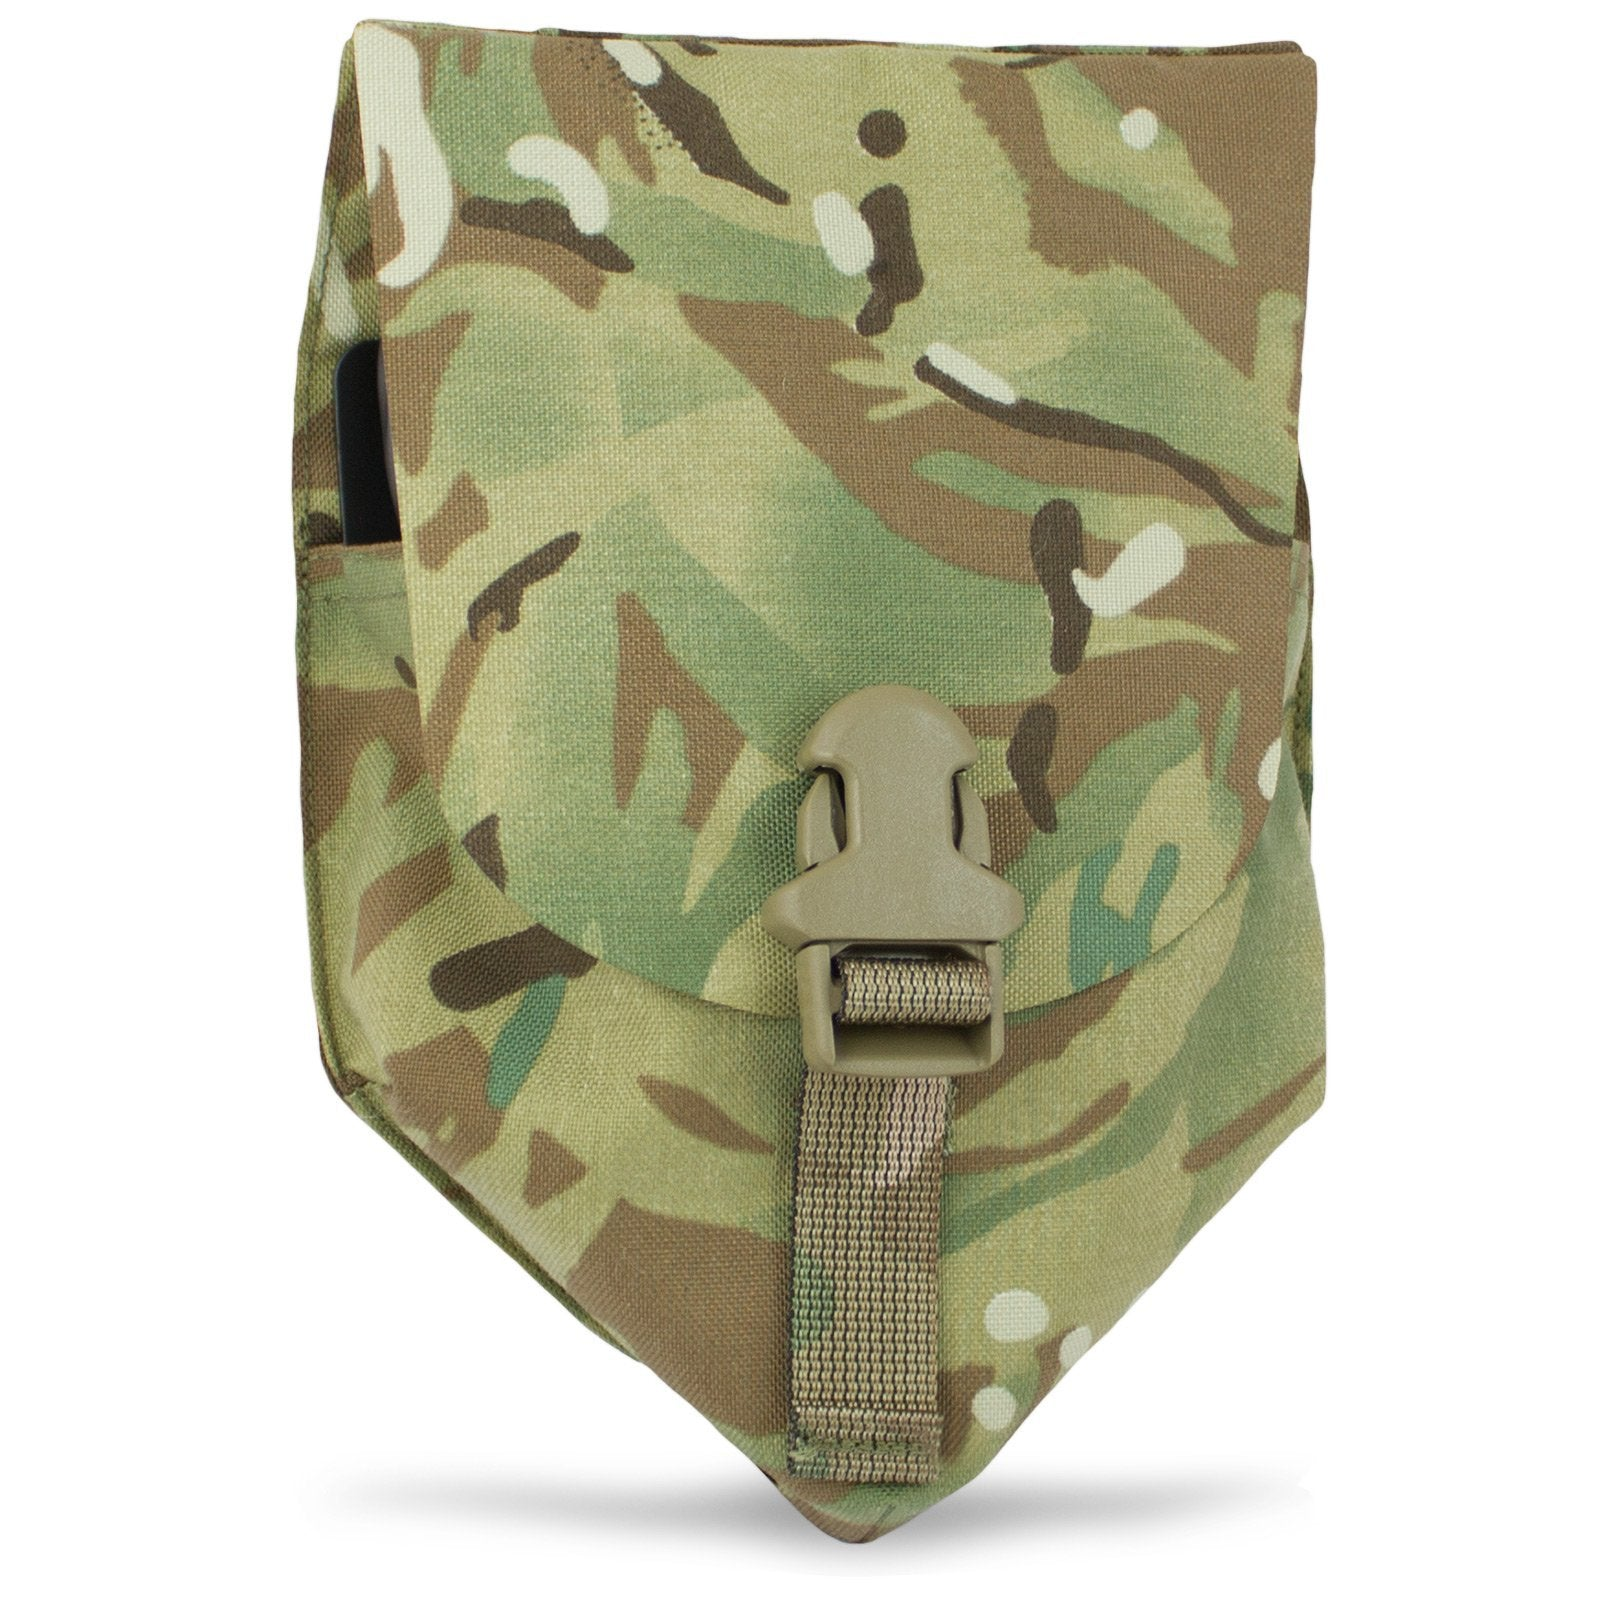 Raven MOLLE Entrenching Tool Cover Pouch | UKMCPro